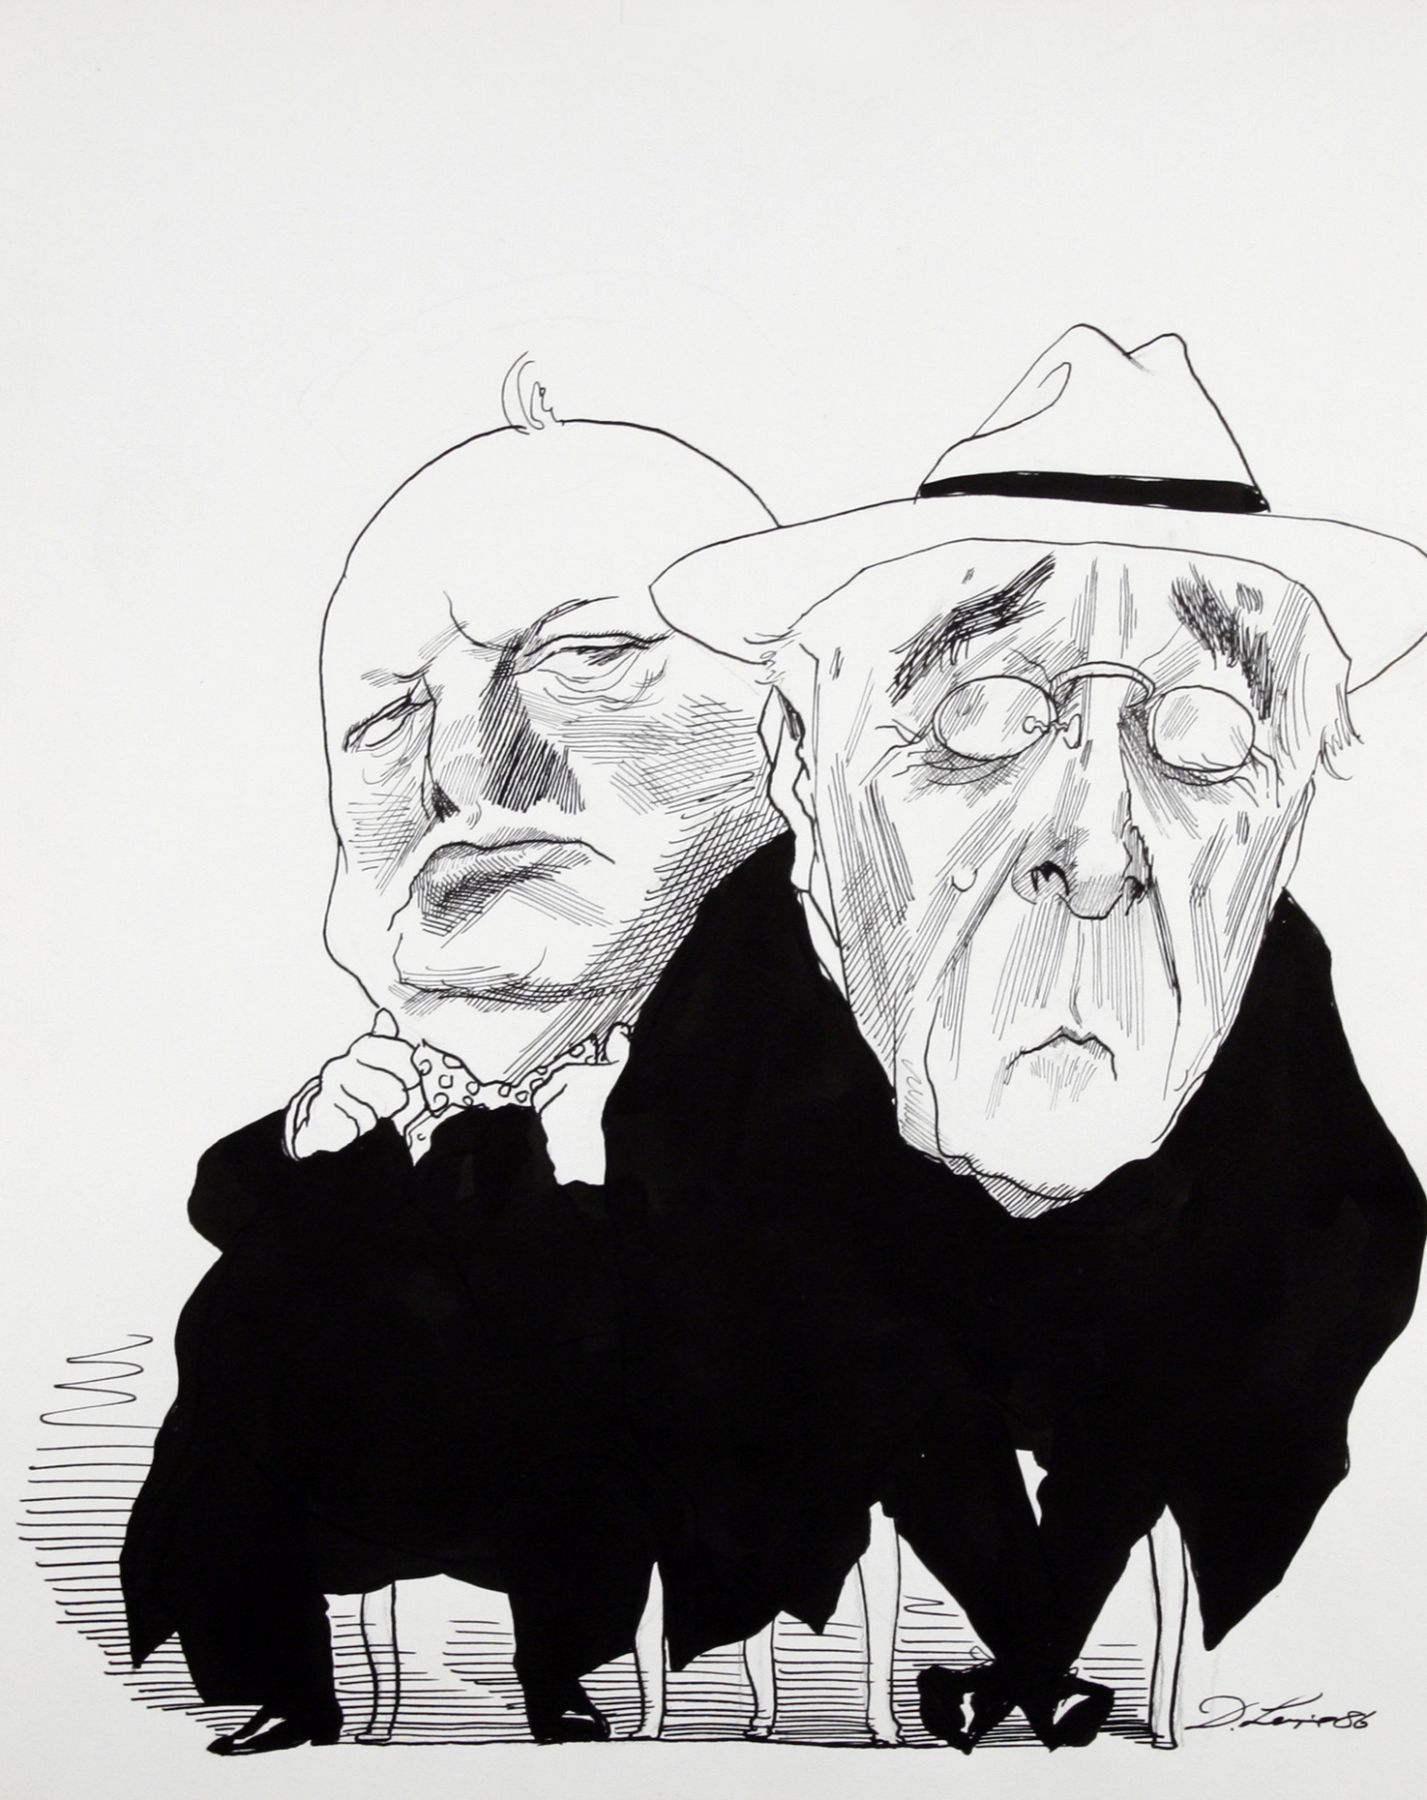 David Levine, FDR & Churchill, 1986, ink on paper, 13 1/2 x 11 inches